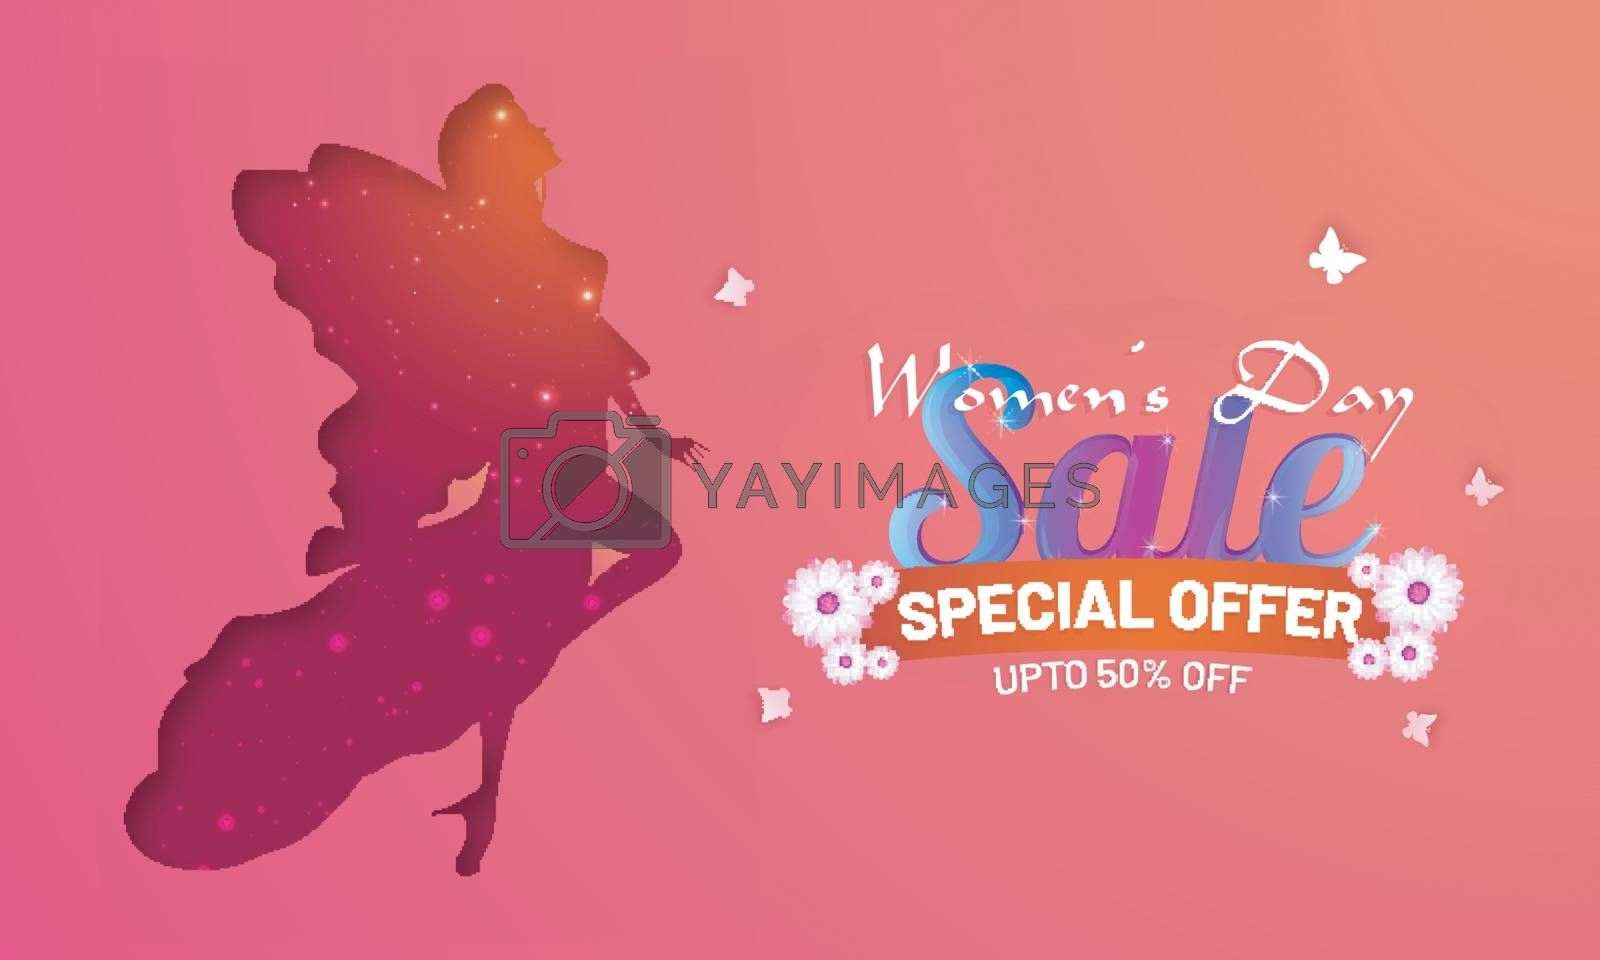 Women's Day sale poster or banner design with paper cutout style women silhouette and 50% discount offer.